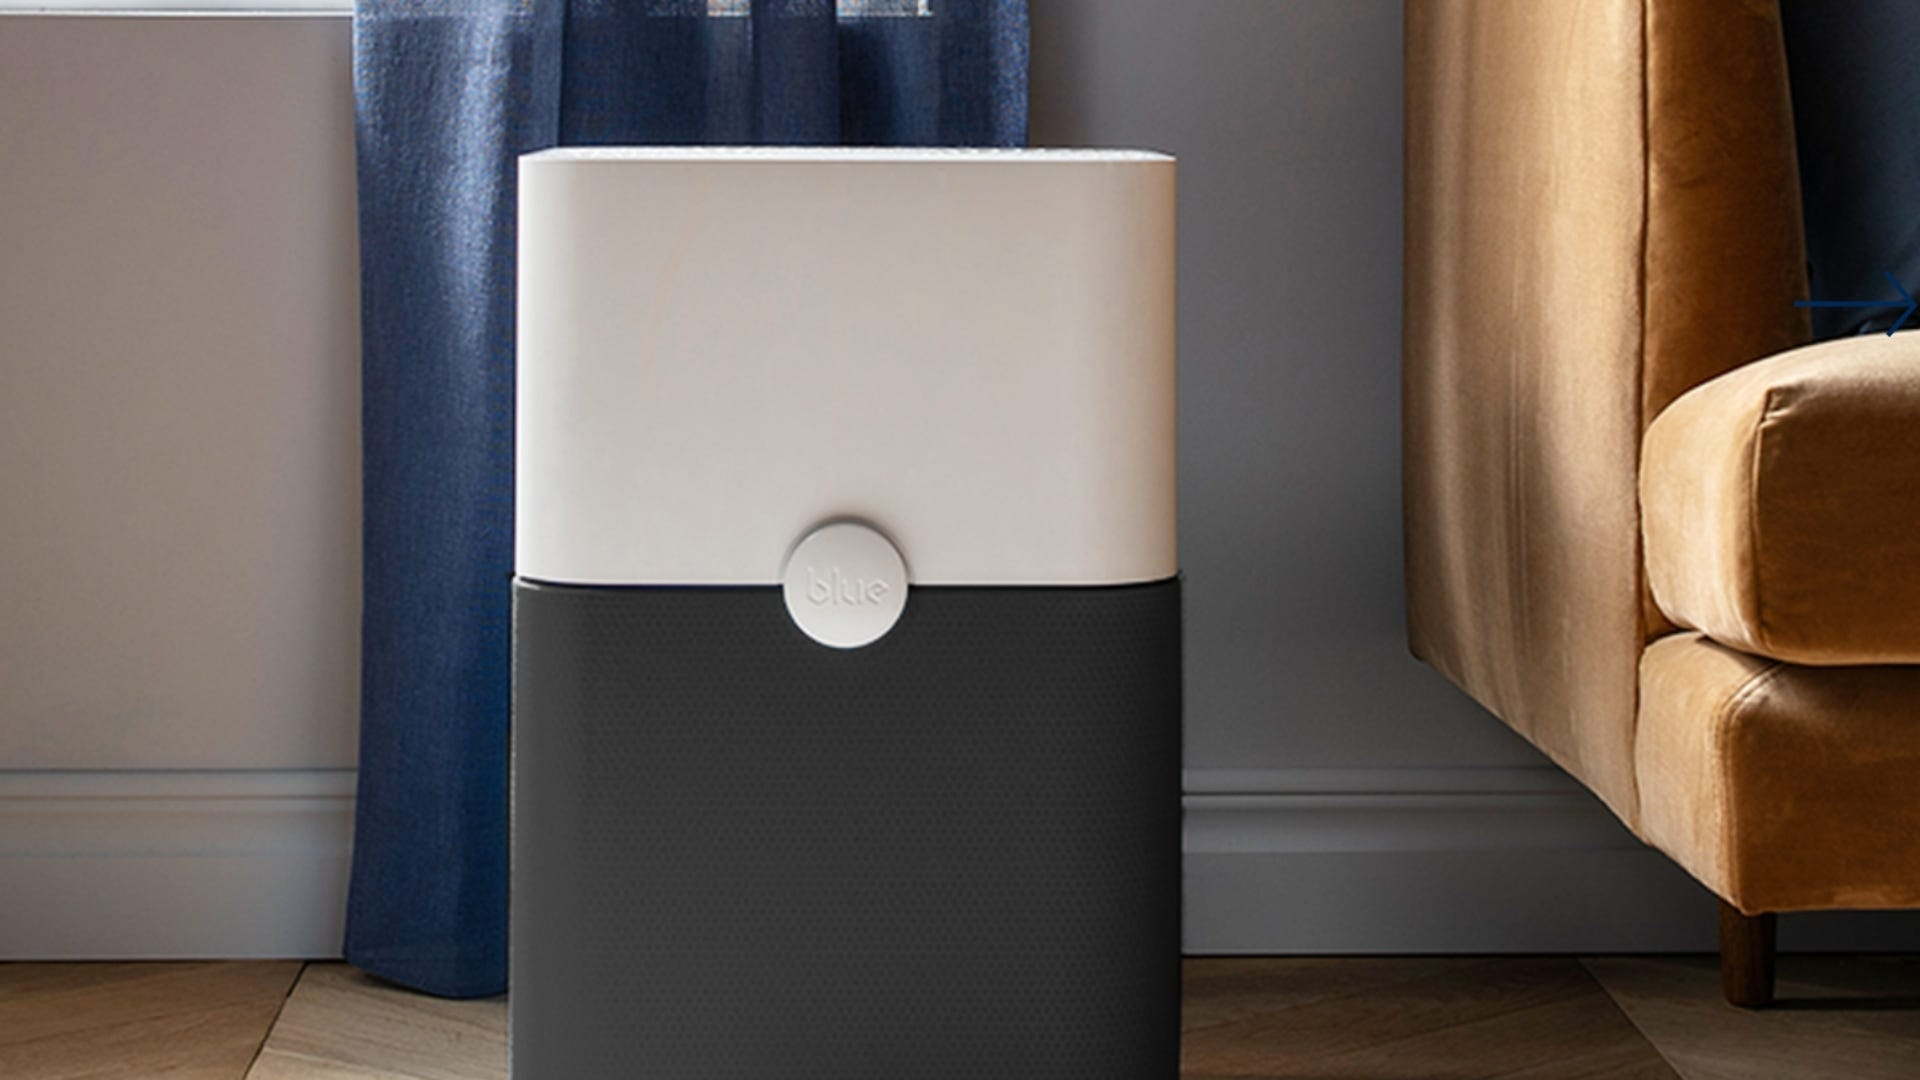 The Blueair Blue Pure 211+ Air Purifier on the floor in a living room.